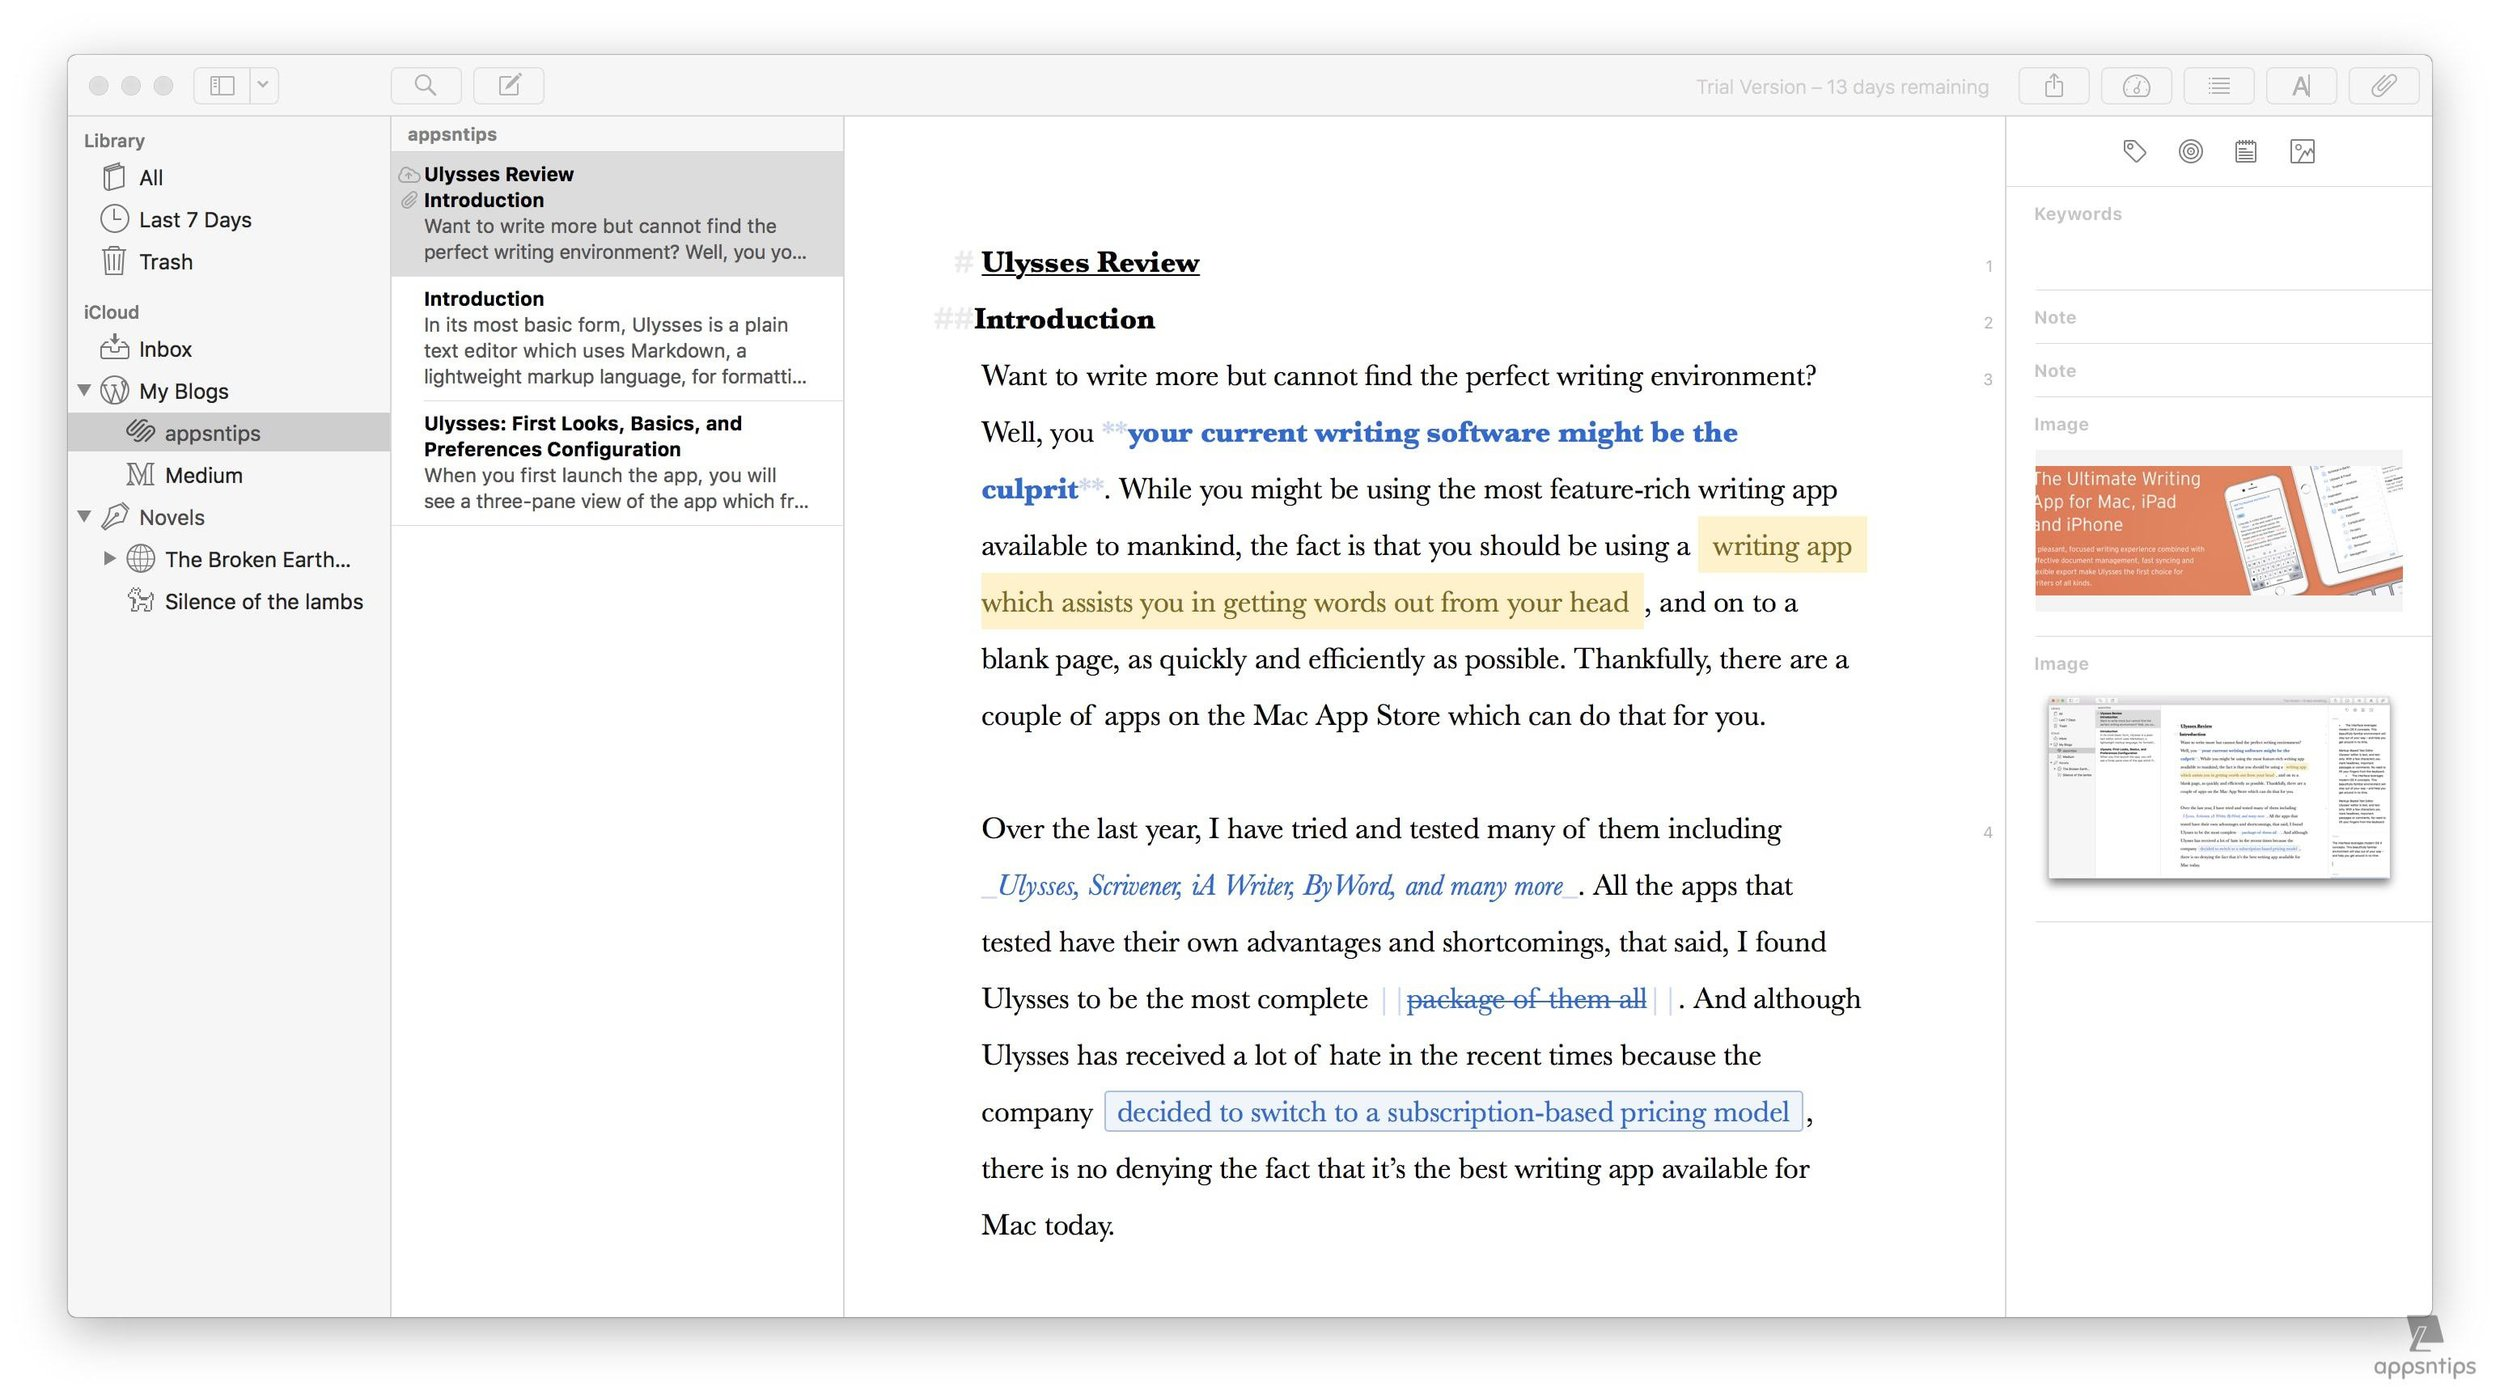 Reference Notes and Images in Ulysses 2.jpg